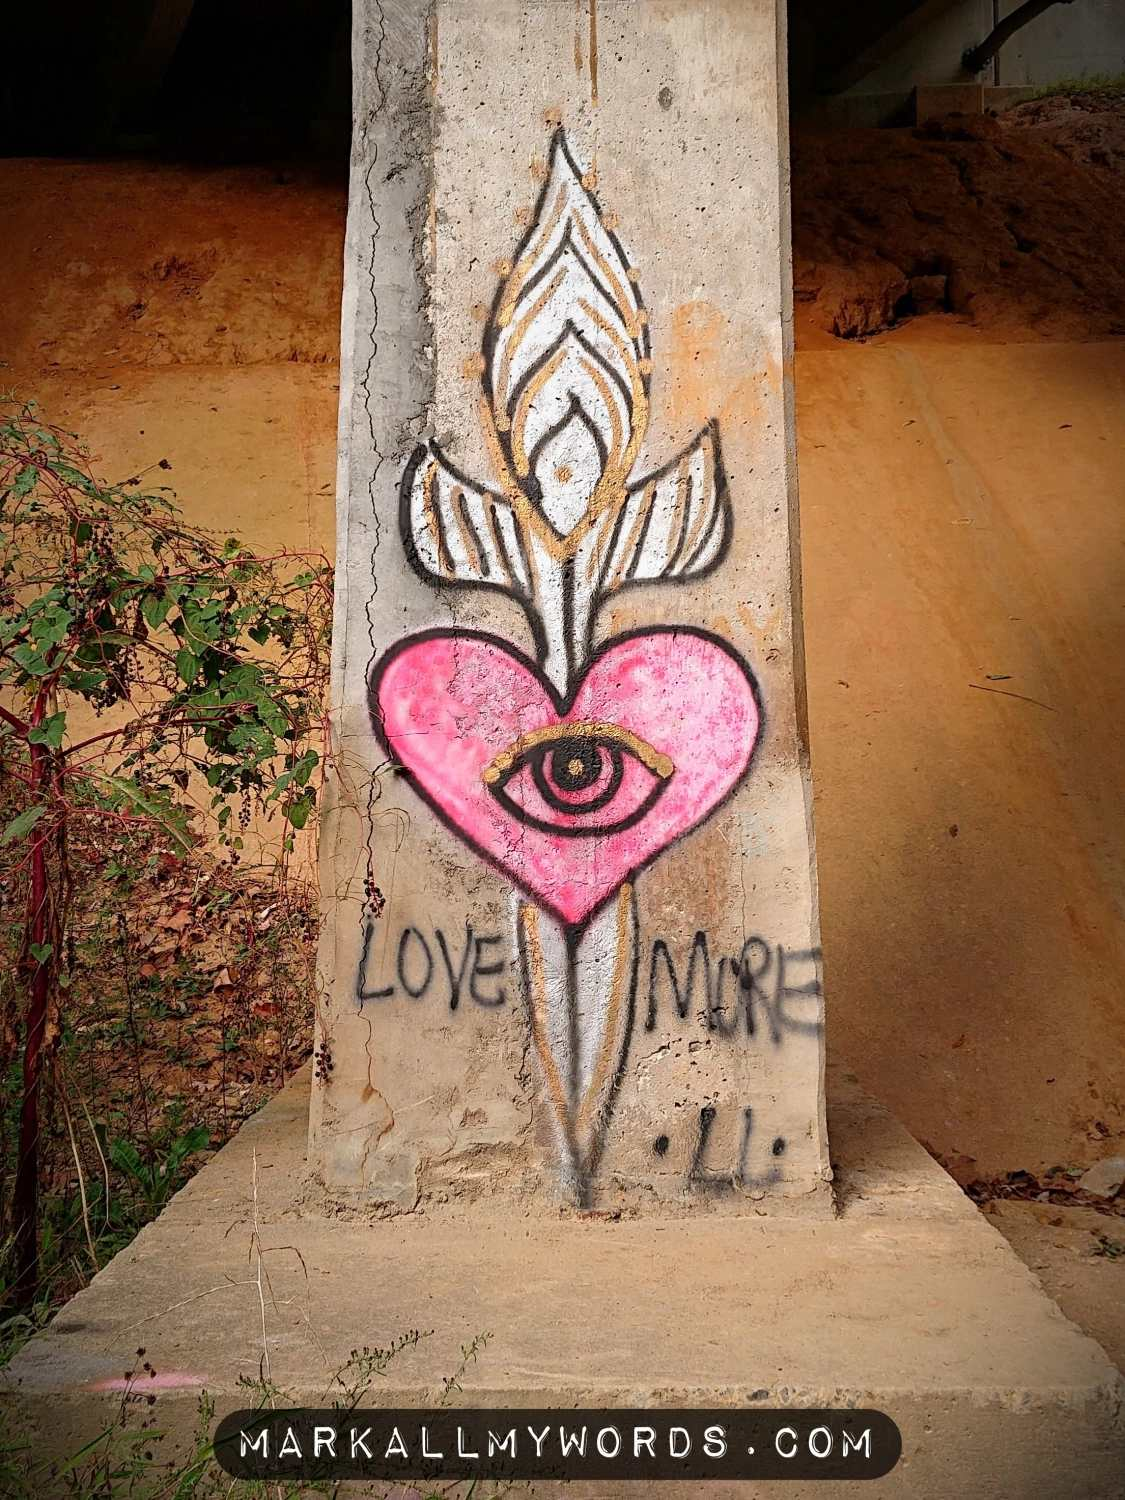 Surreal street art with pink heart and eye